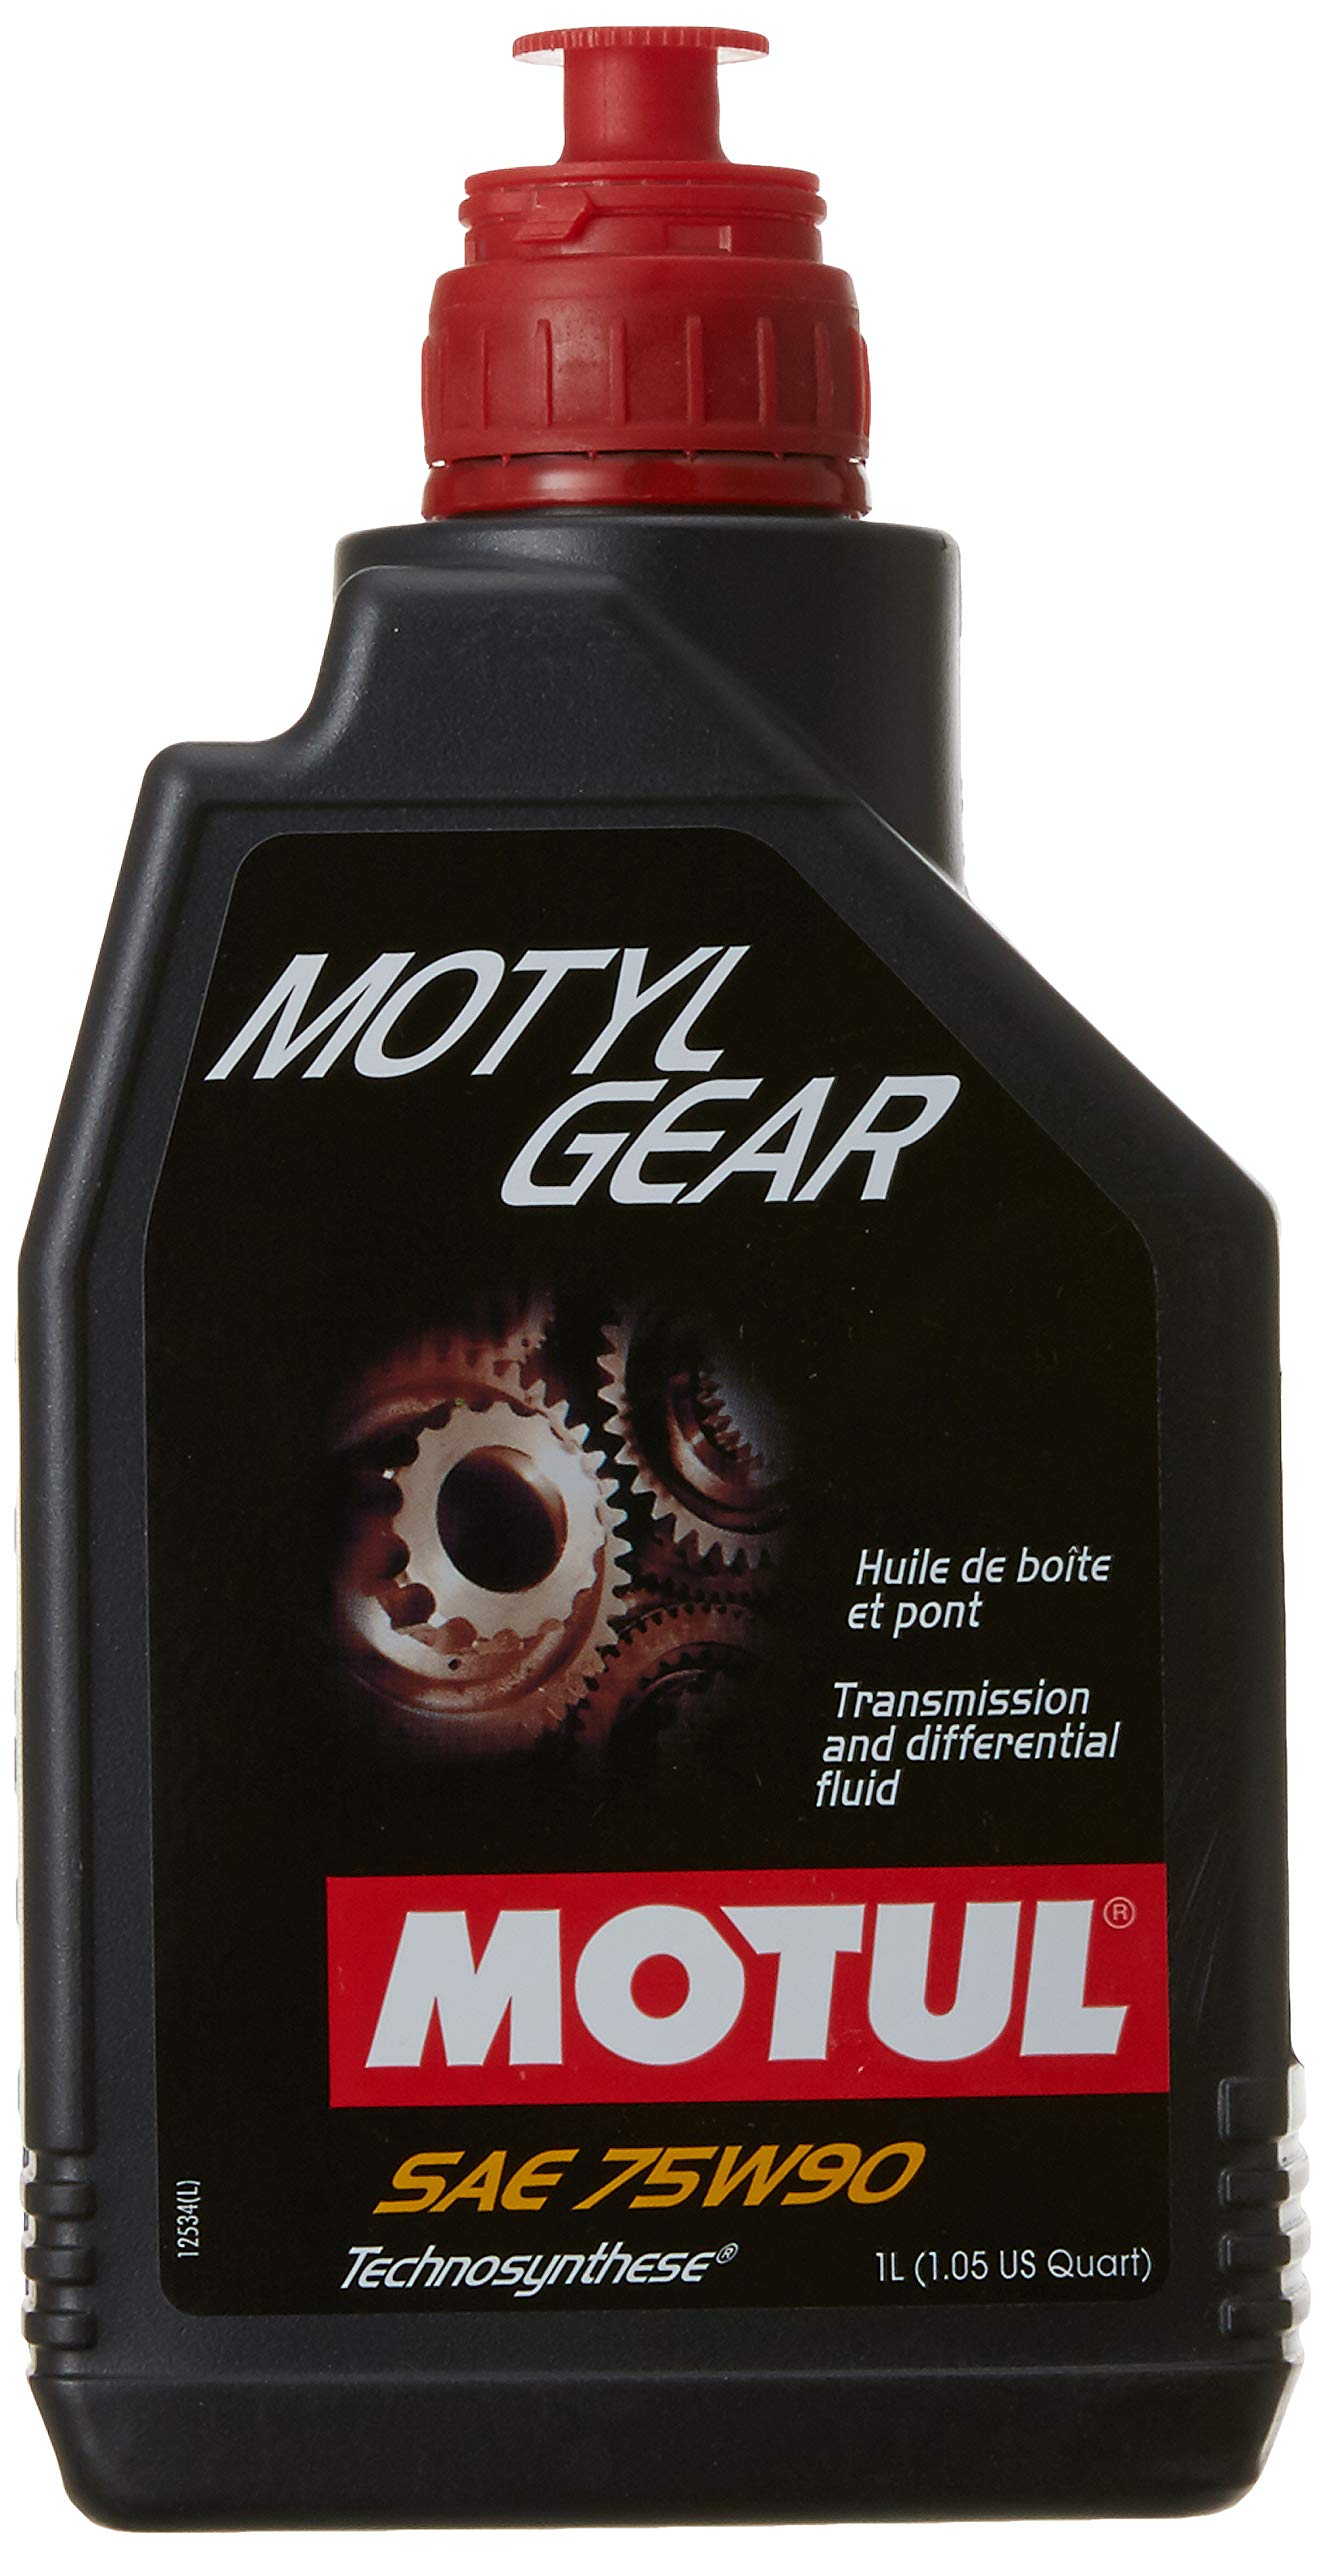 Motul Motylgear 75W-90 Technosynthese Differential Lubricant (1 L) product image